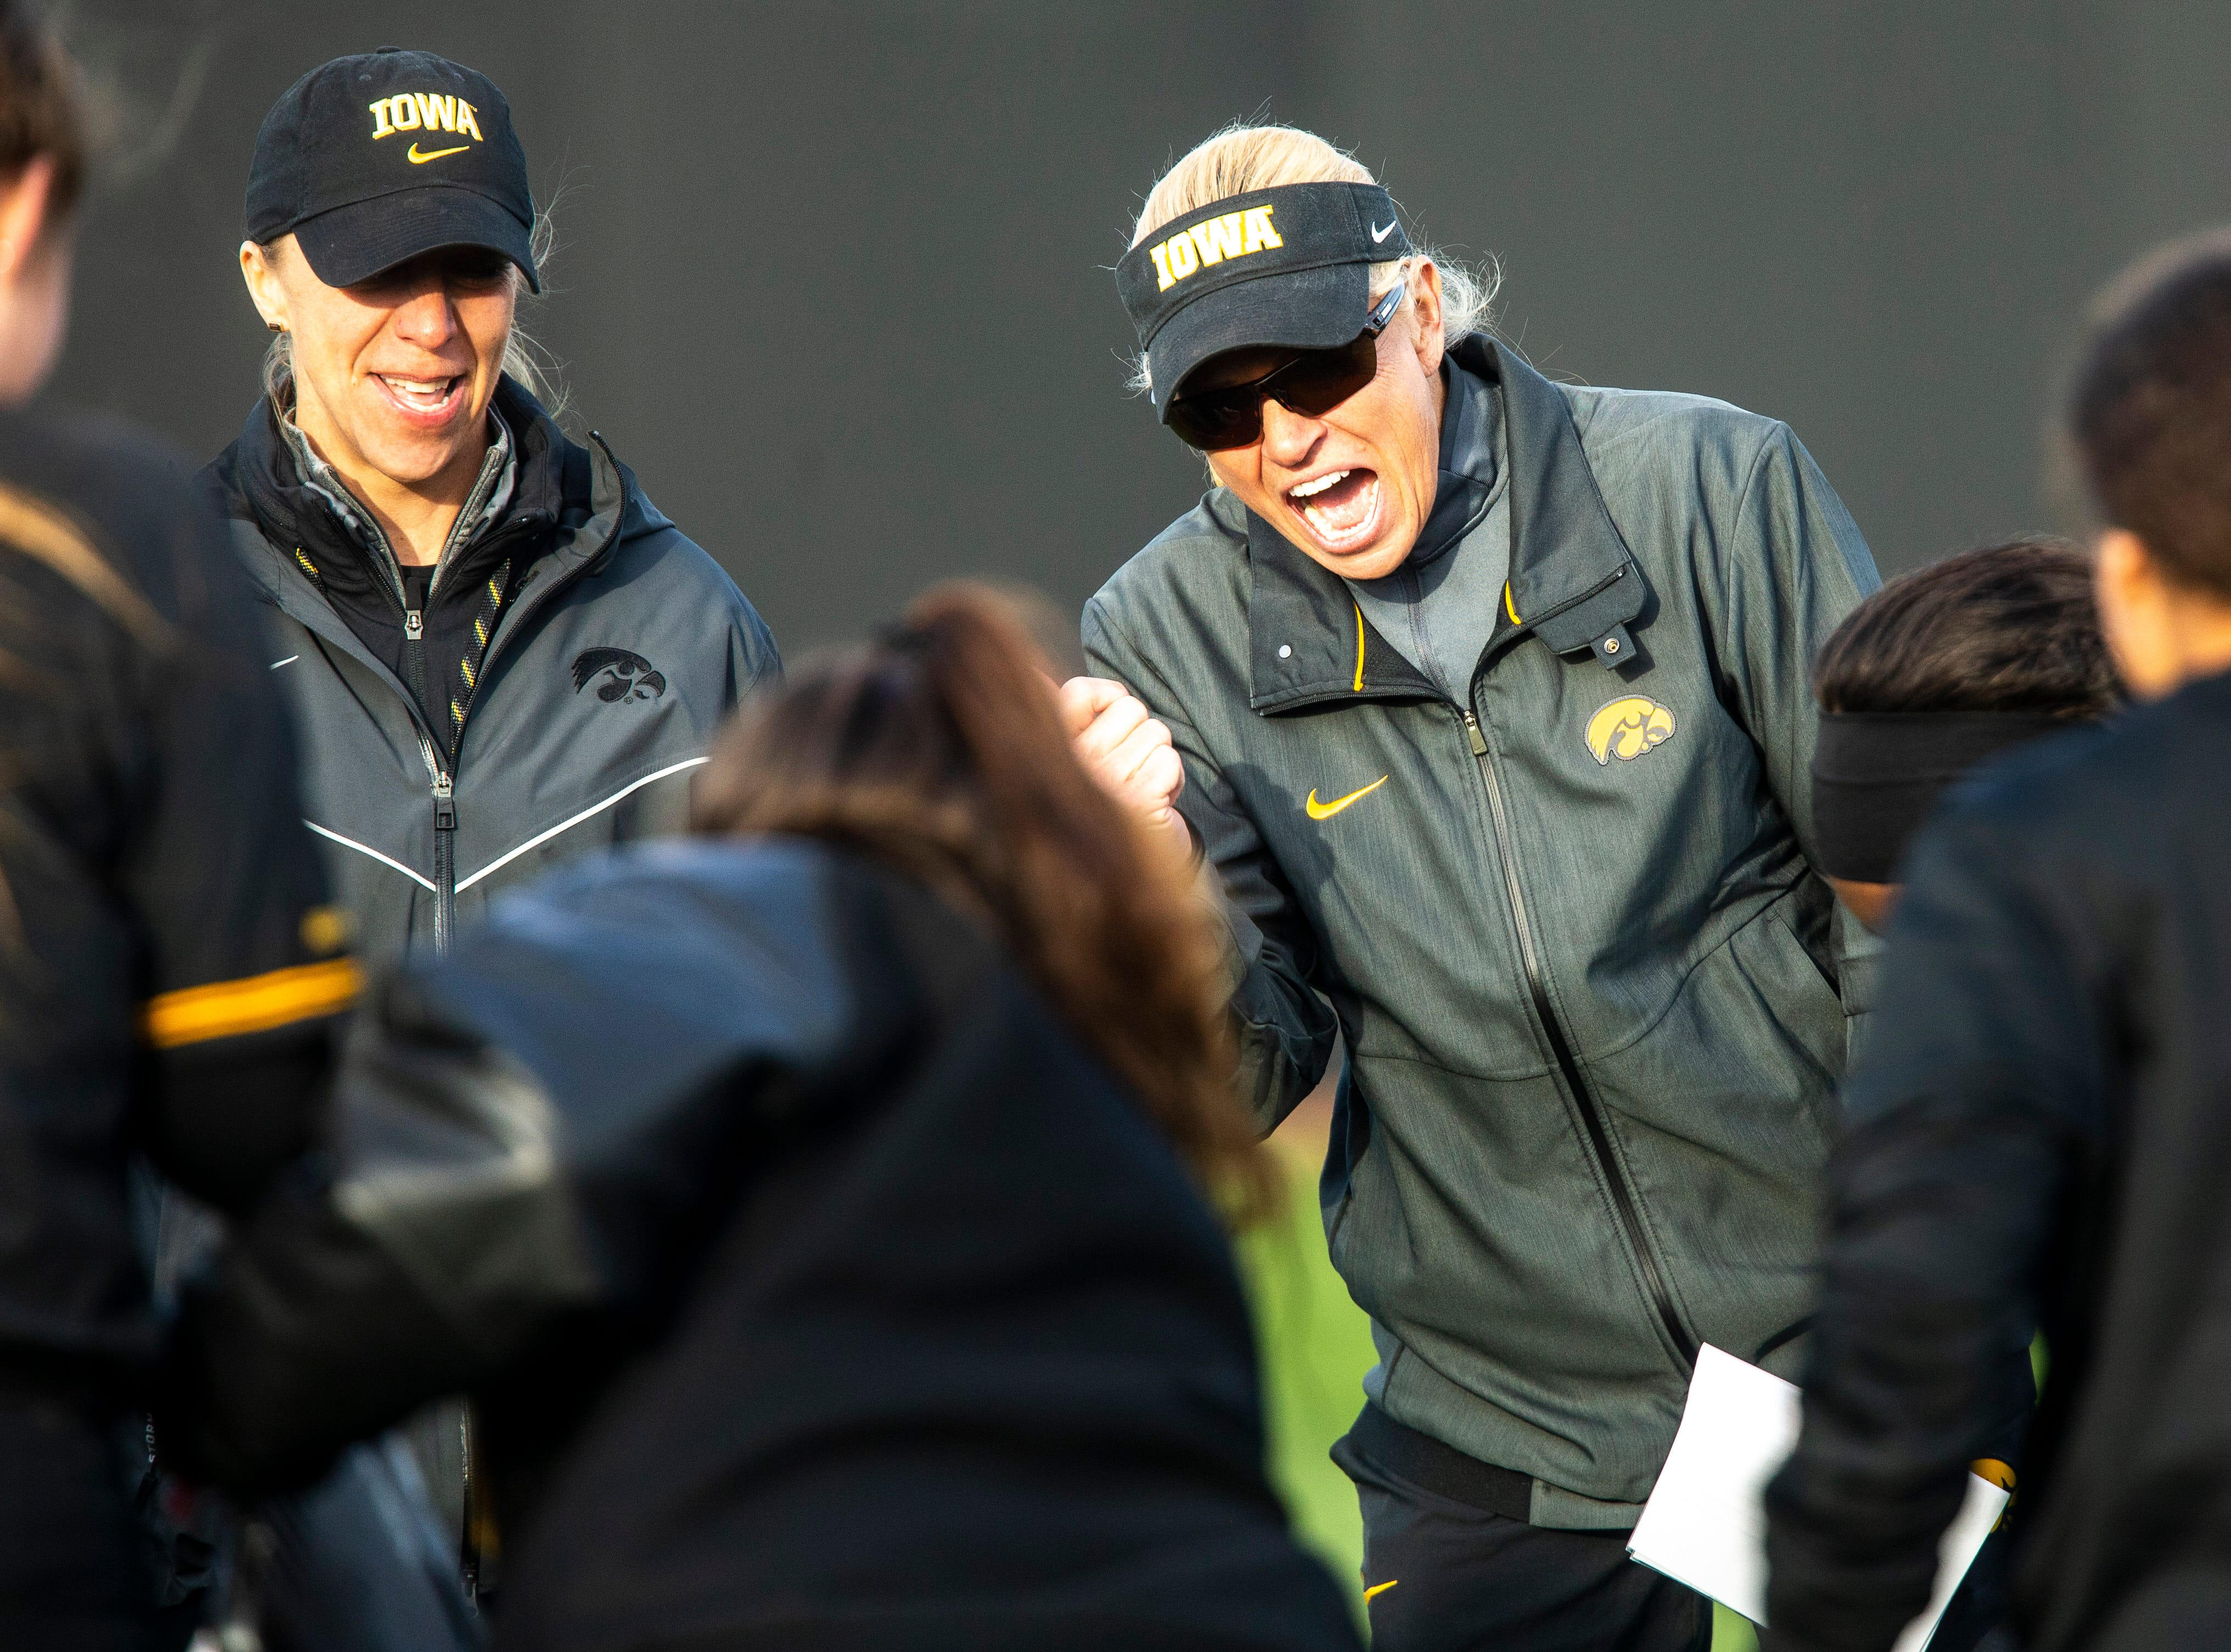 Iowa head coach Renee Gillispie celebrates with the team after a NCAA Big Ten Conference softball game against Illinois on Saturday, April 13, 2019, at Bob Pearl Field in Coralville, Iowa. The Hawkeyes defeated Illinois, 4-3, for the first home win of the season.